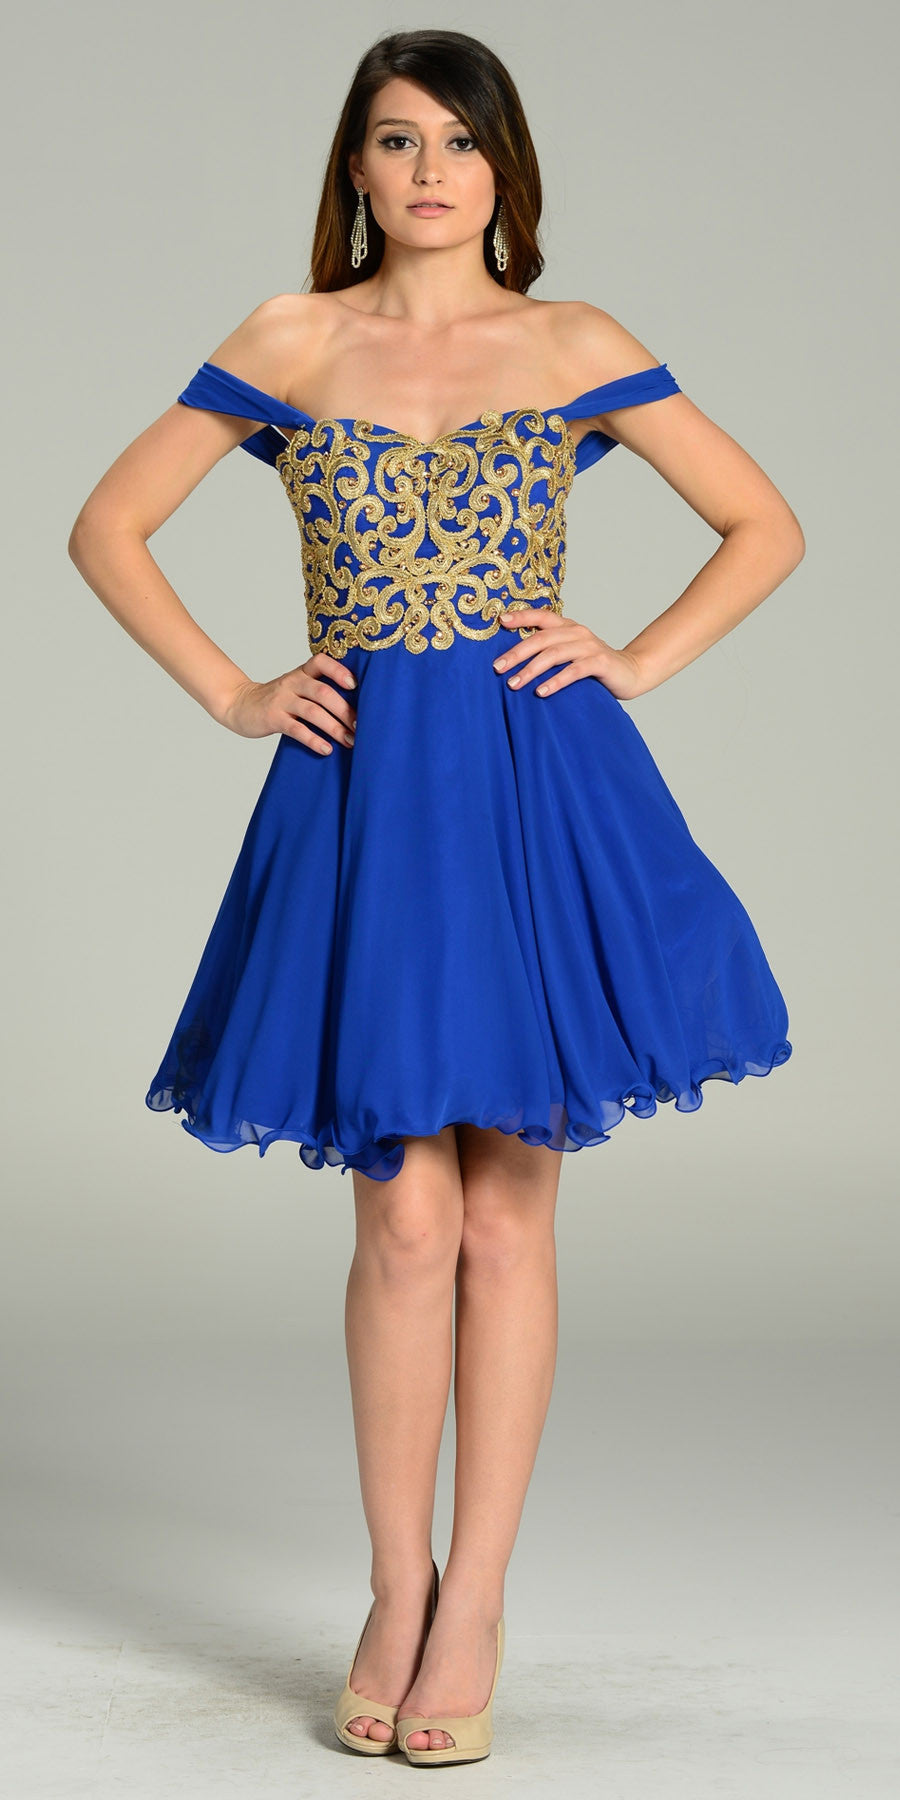 789351e6d5fc Short Chiffon Spanish Style Off The Shoulder Dress Royal Blue Gold. Tap to  expand